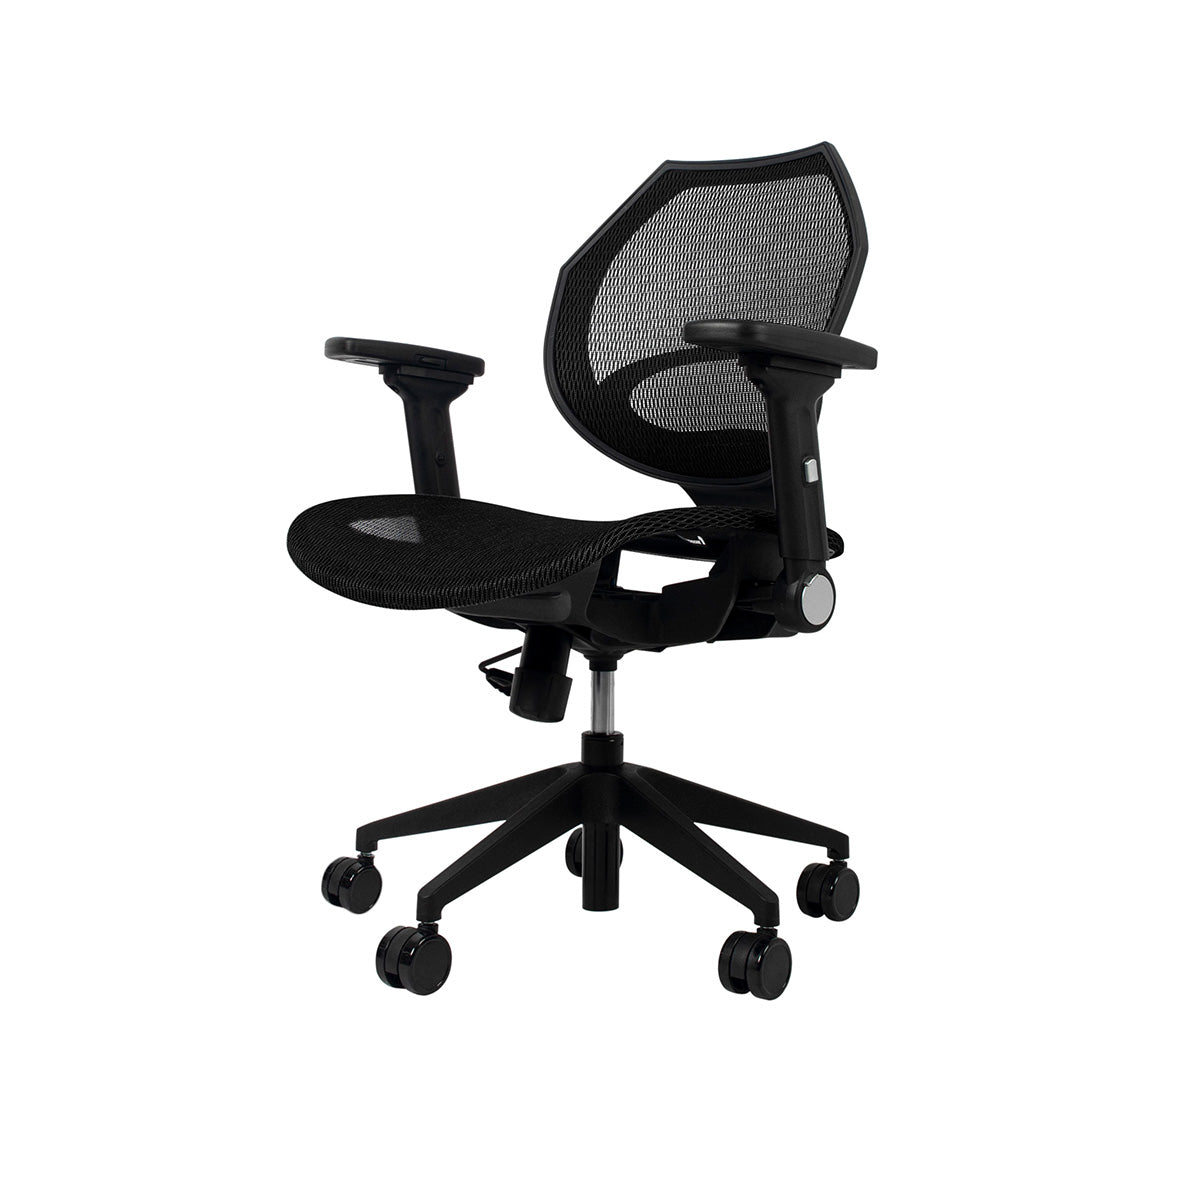 Wavebone Voyager I Ergonomic Studio Chair with Low Back support